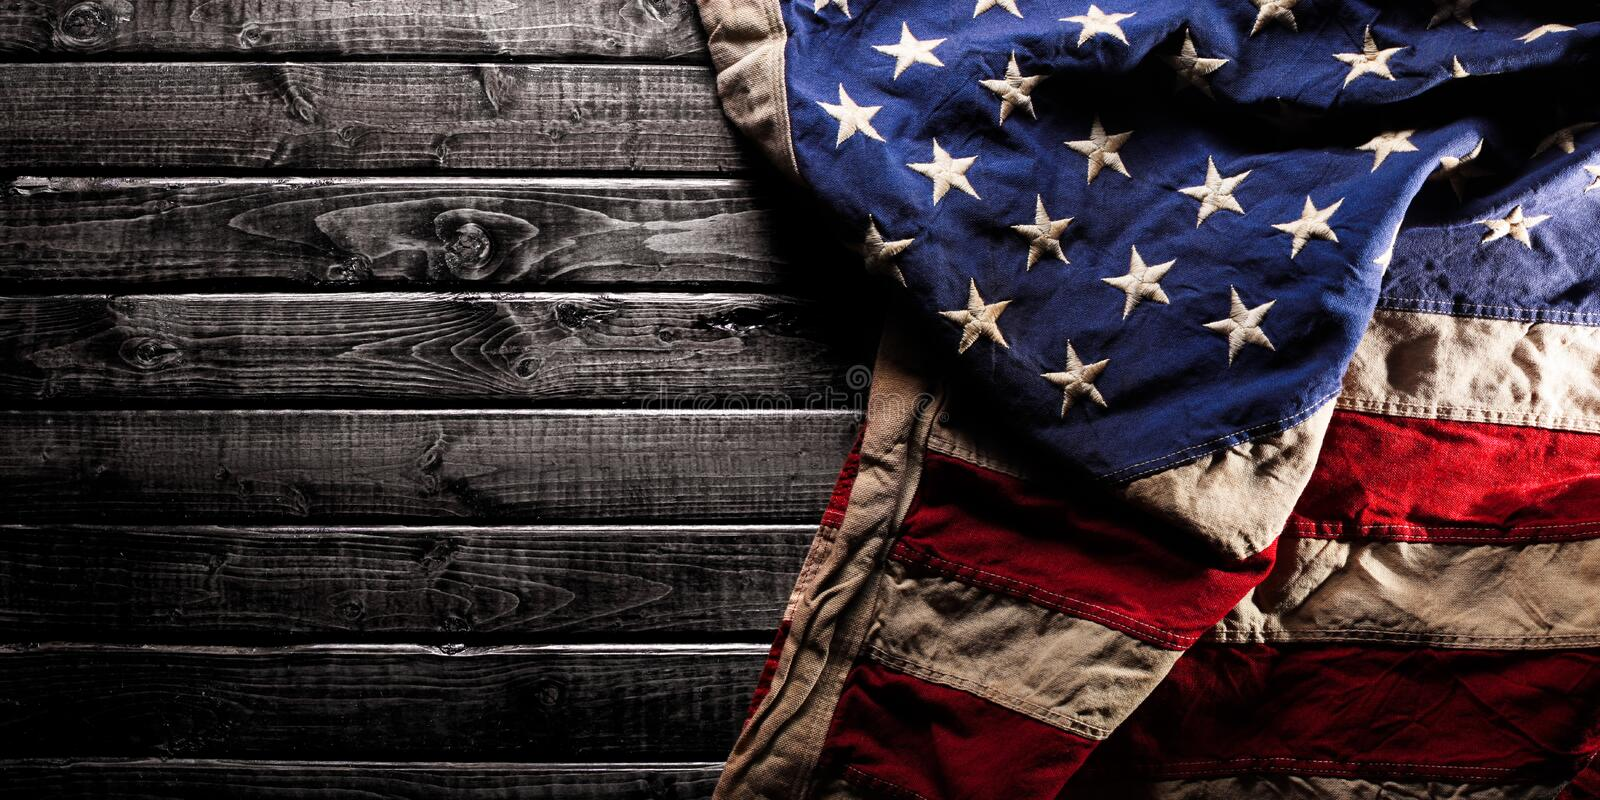 Old American flag on dark wooden background royalty free stock photo